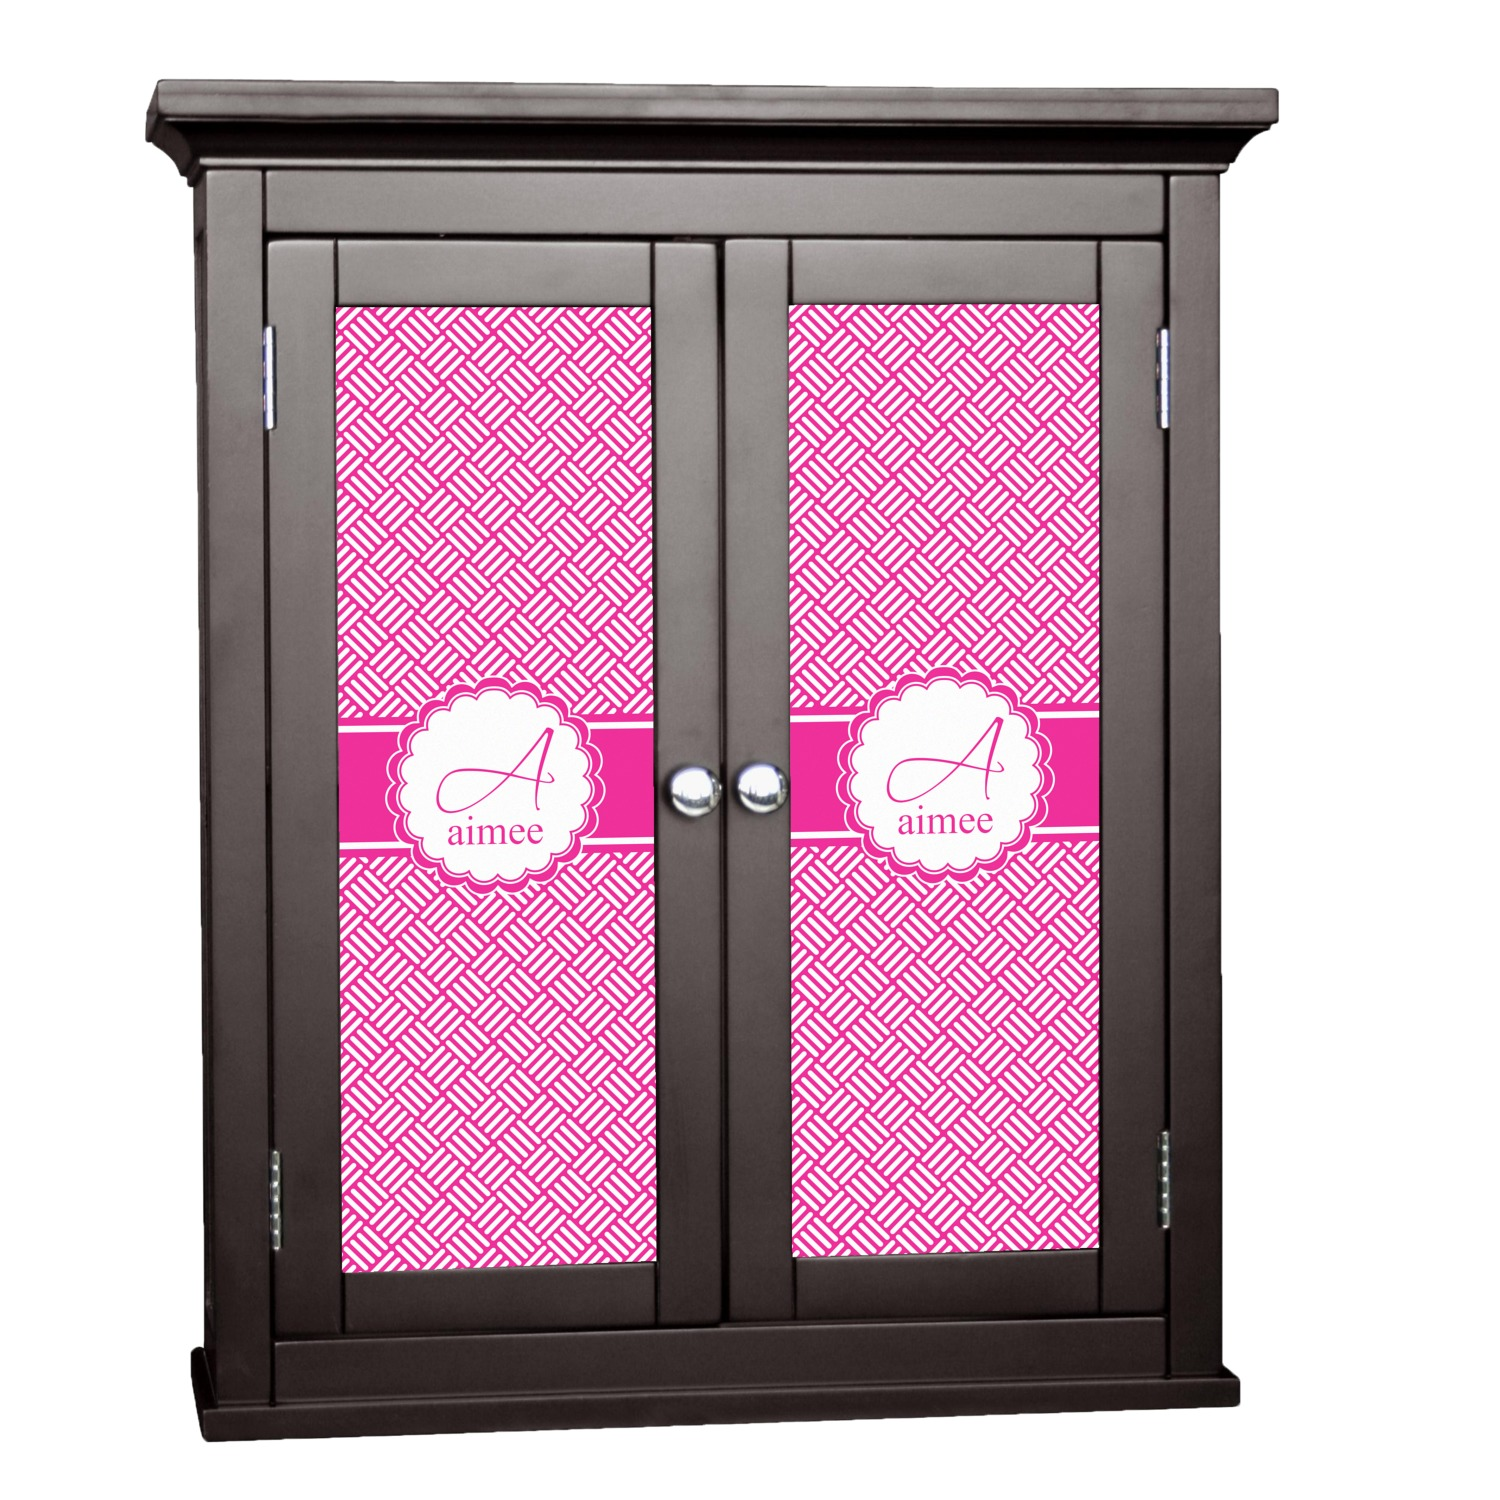 Hashtag cabinet decal custom size personalized for Office design hashtags